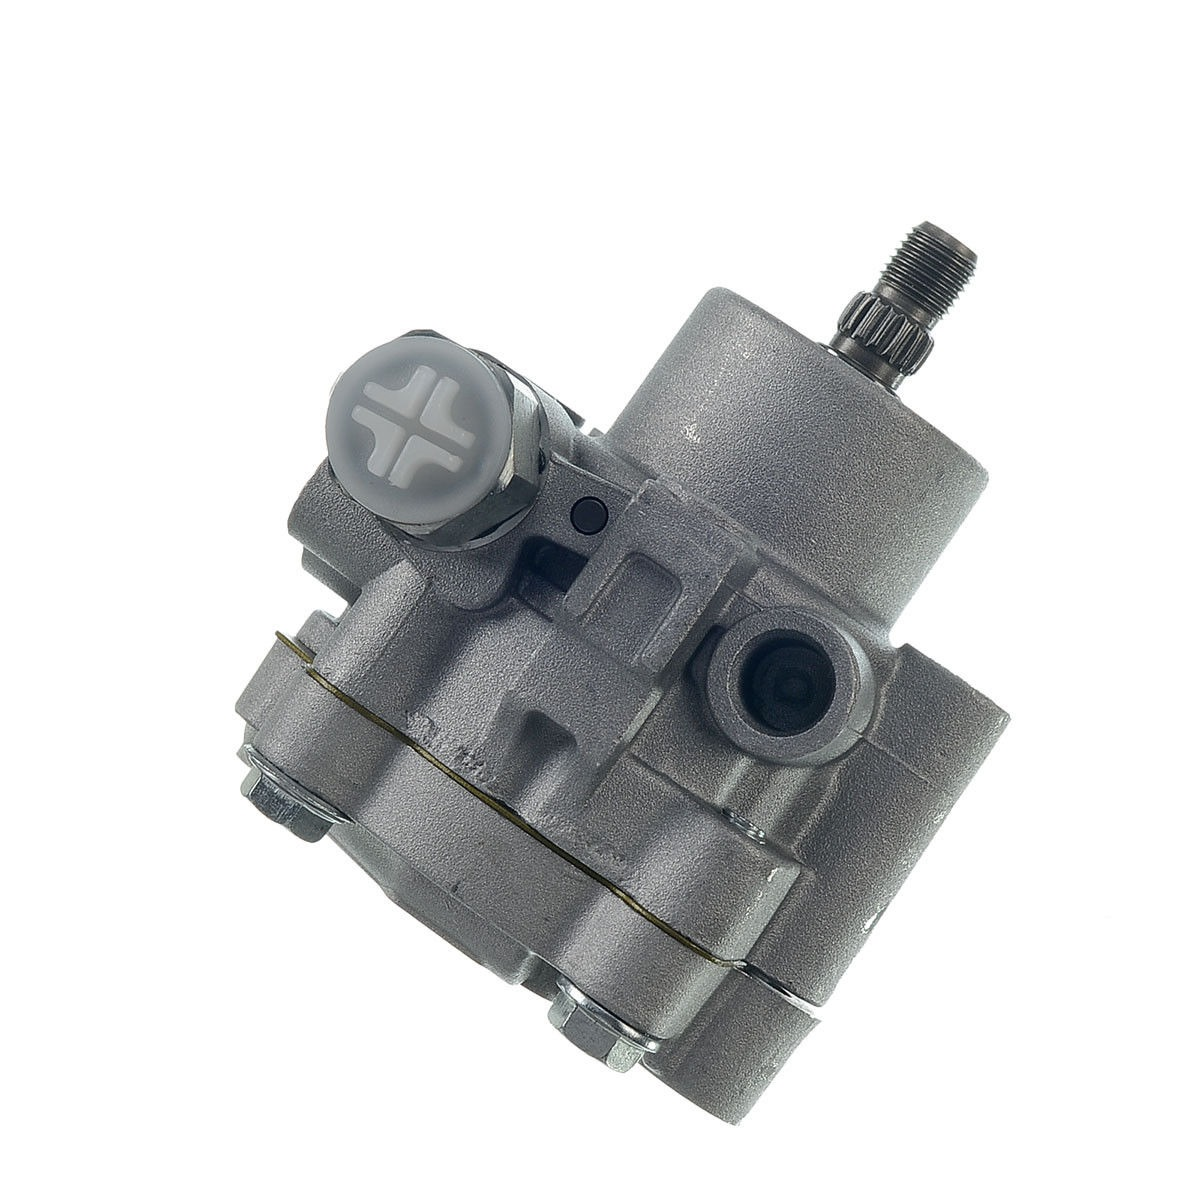 Power Steering Pump Without Reservoir for 1993-1997 Nissan Altima 2.4L 21-5892